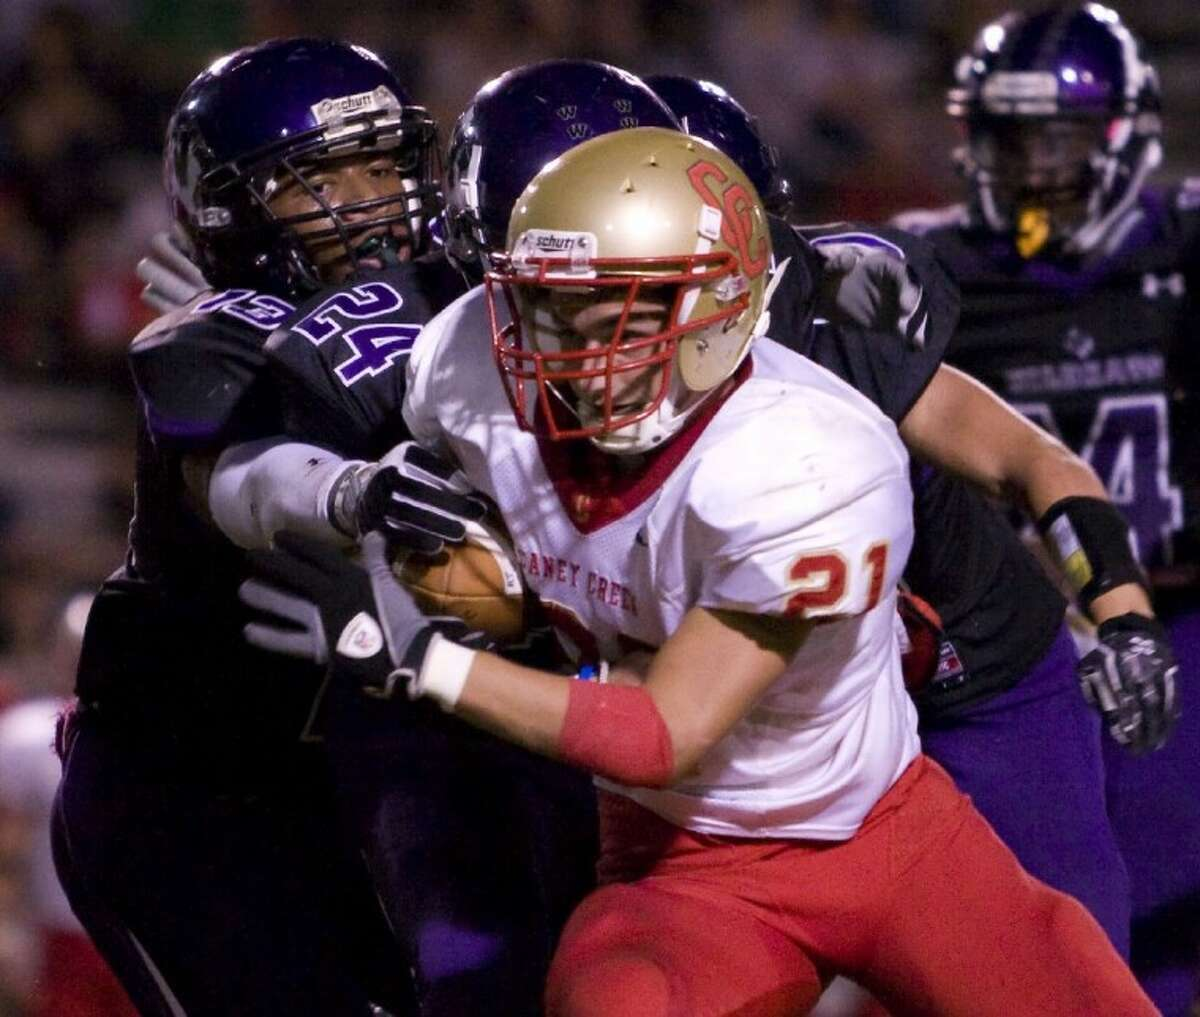 Caney Creek and Willis will join Magnolia, Magnolia West, Montgomery and four other teams in the new District 18-4A in the fall.